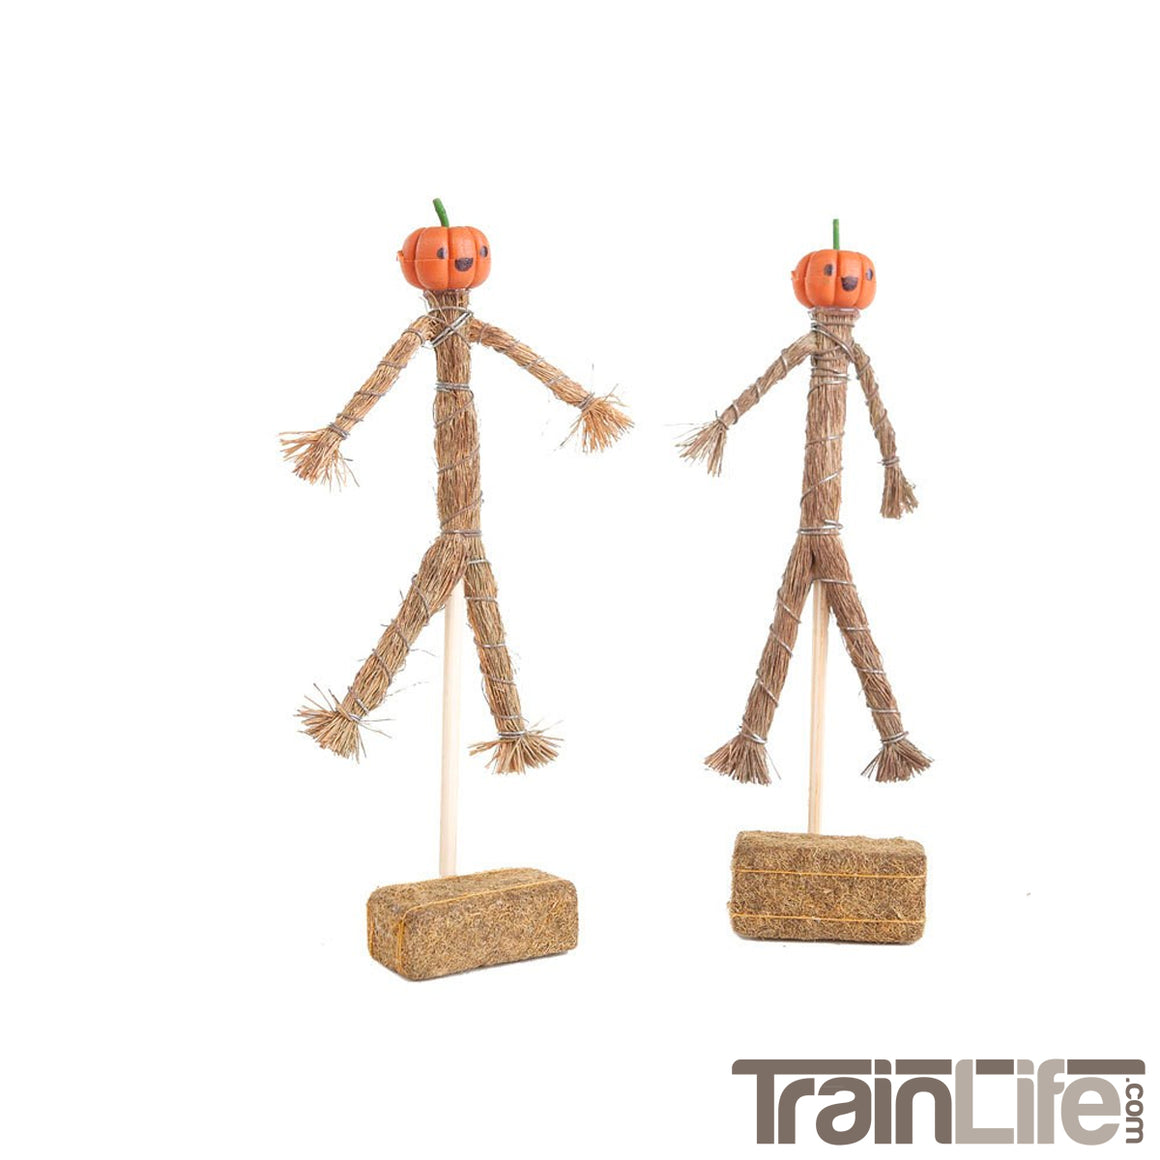 O Scale: Scarecrow and Hay Bales - two pack